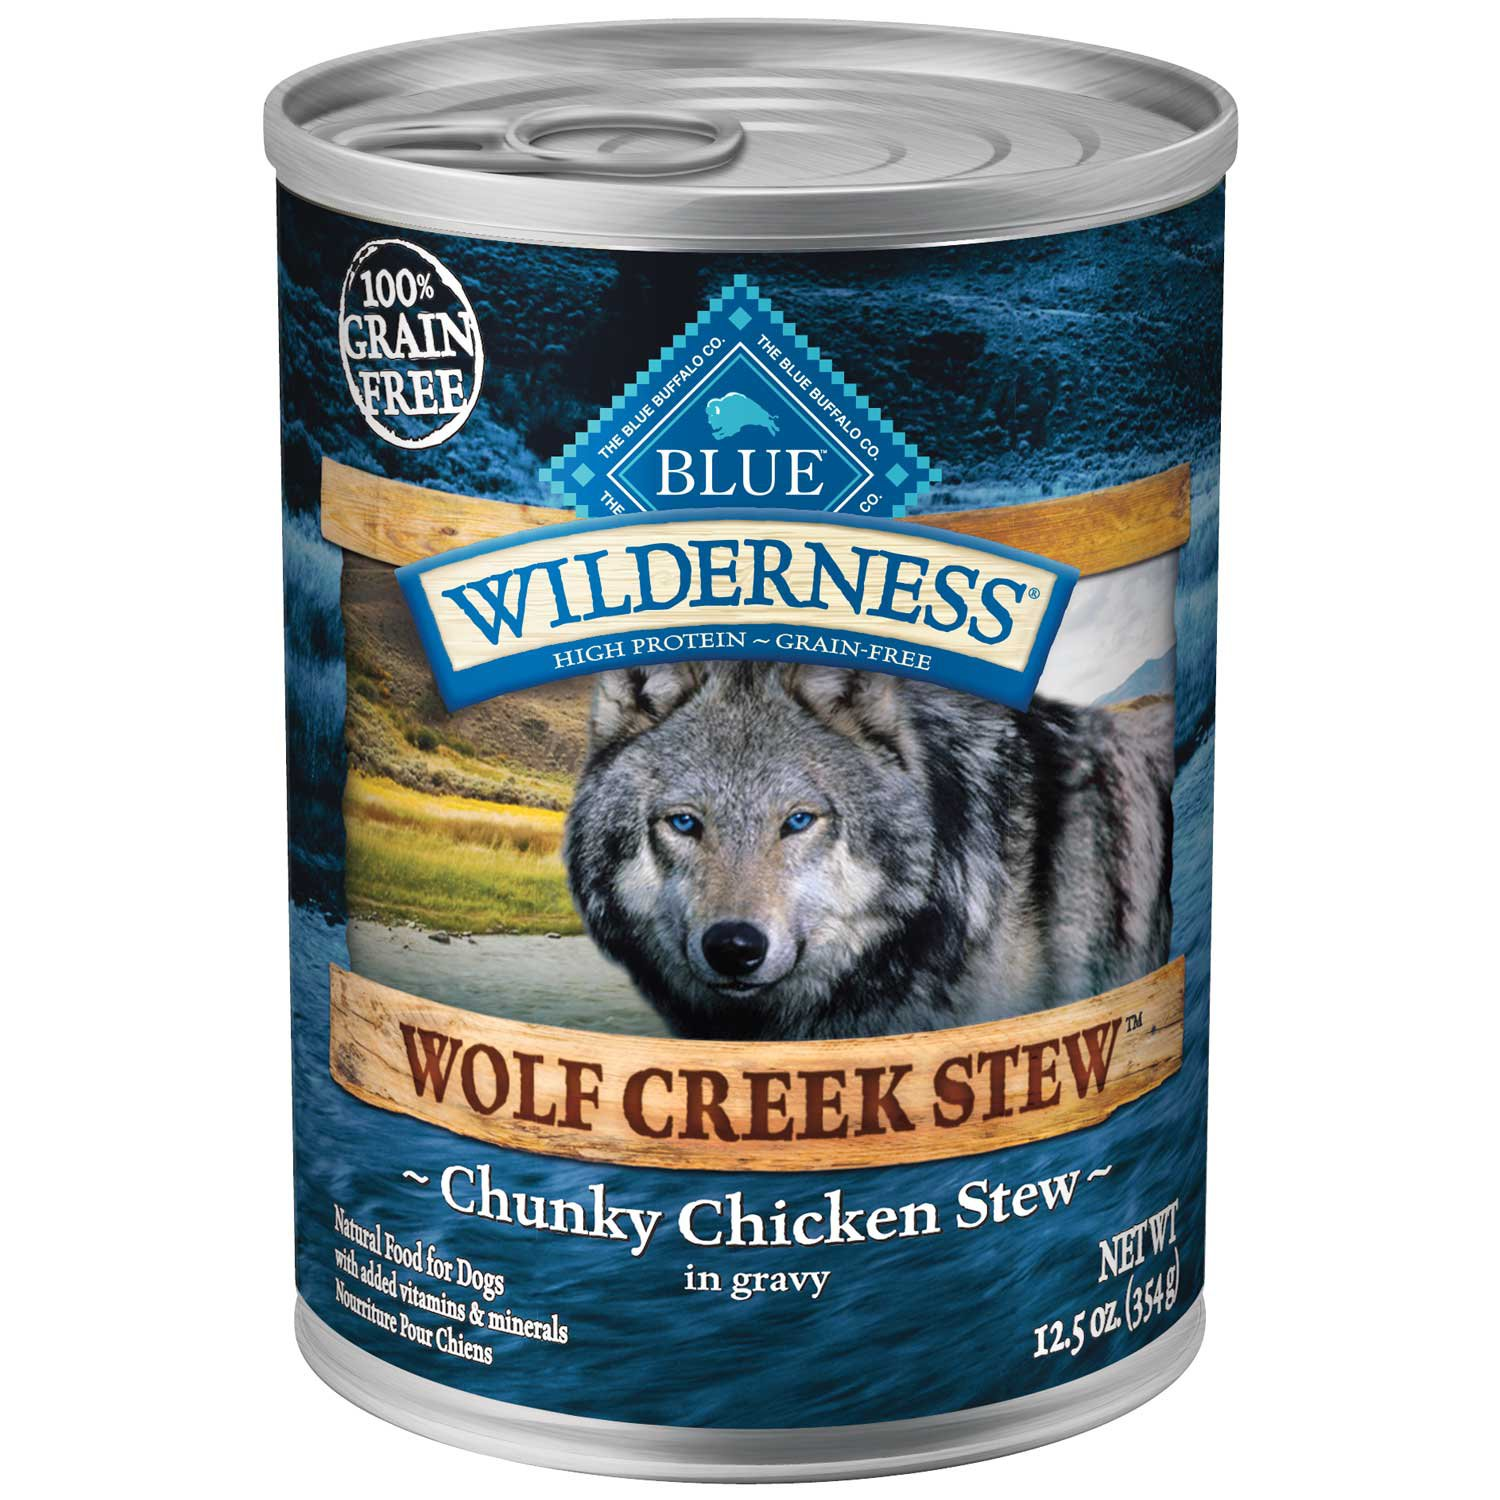 c936ef77b Blue Buffalo Blue Wilderness Wolf Creek Stew Chunky Chicken Stew Wet Dog  Food | Petco